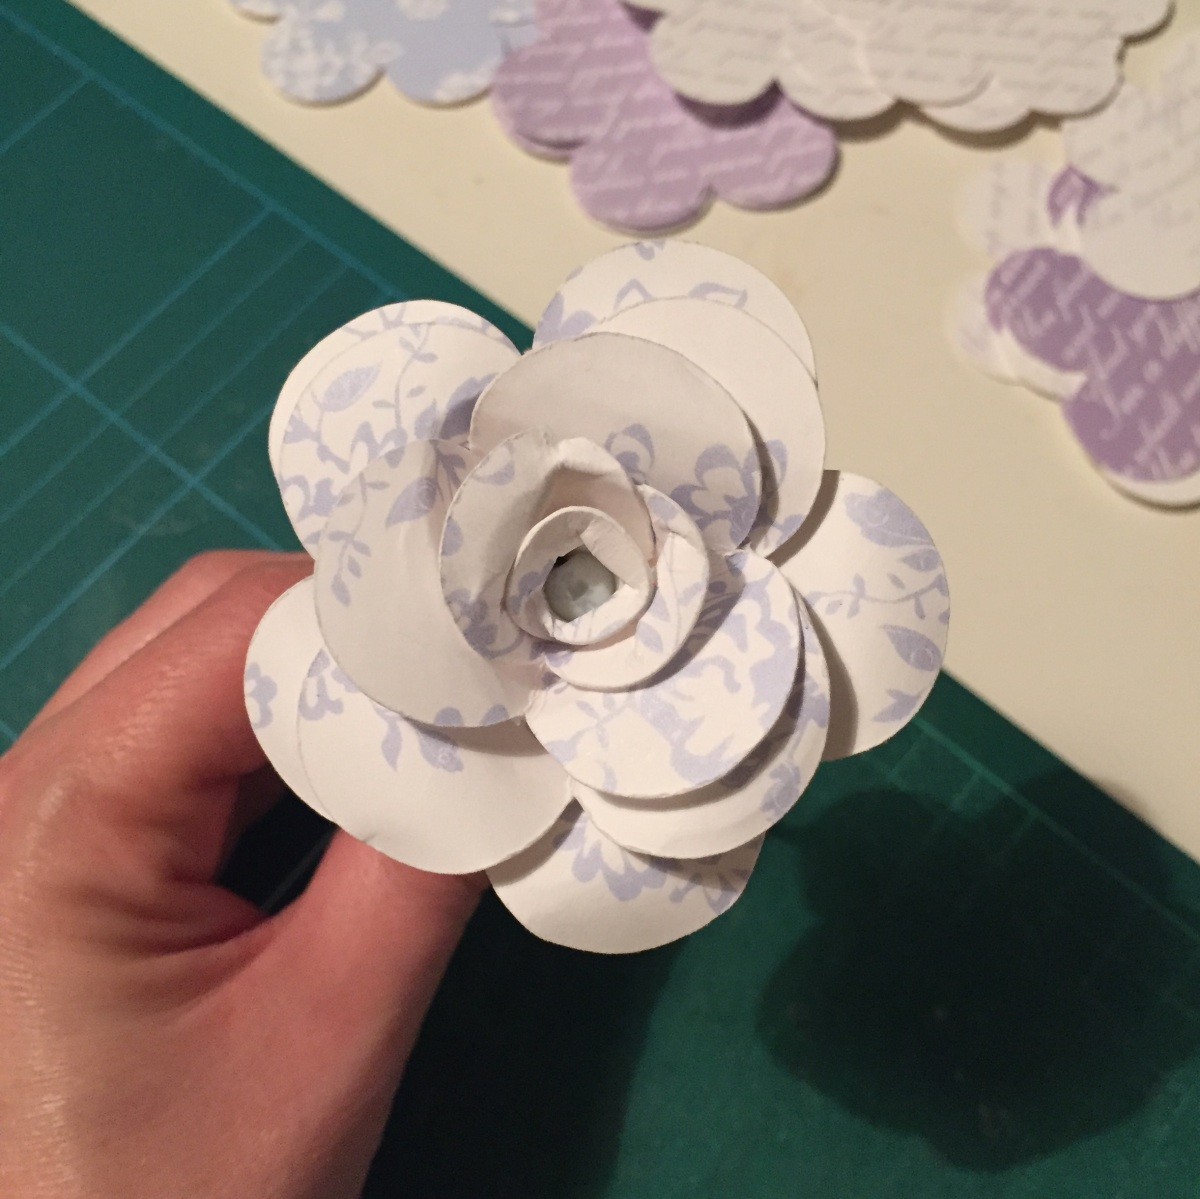 A close up photograph of one of Emma's complete flower